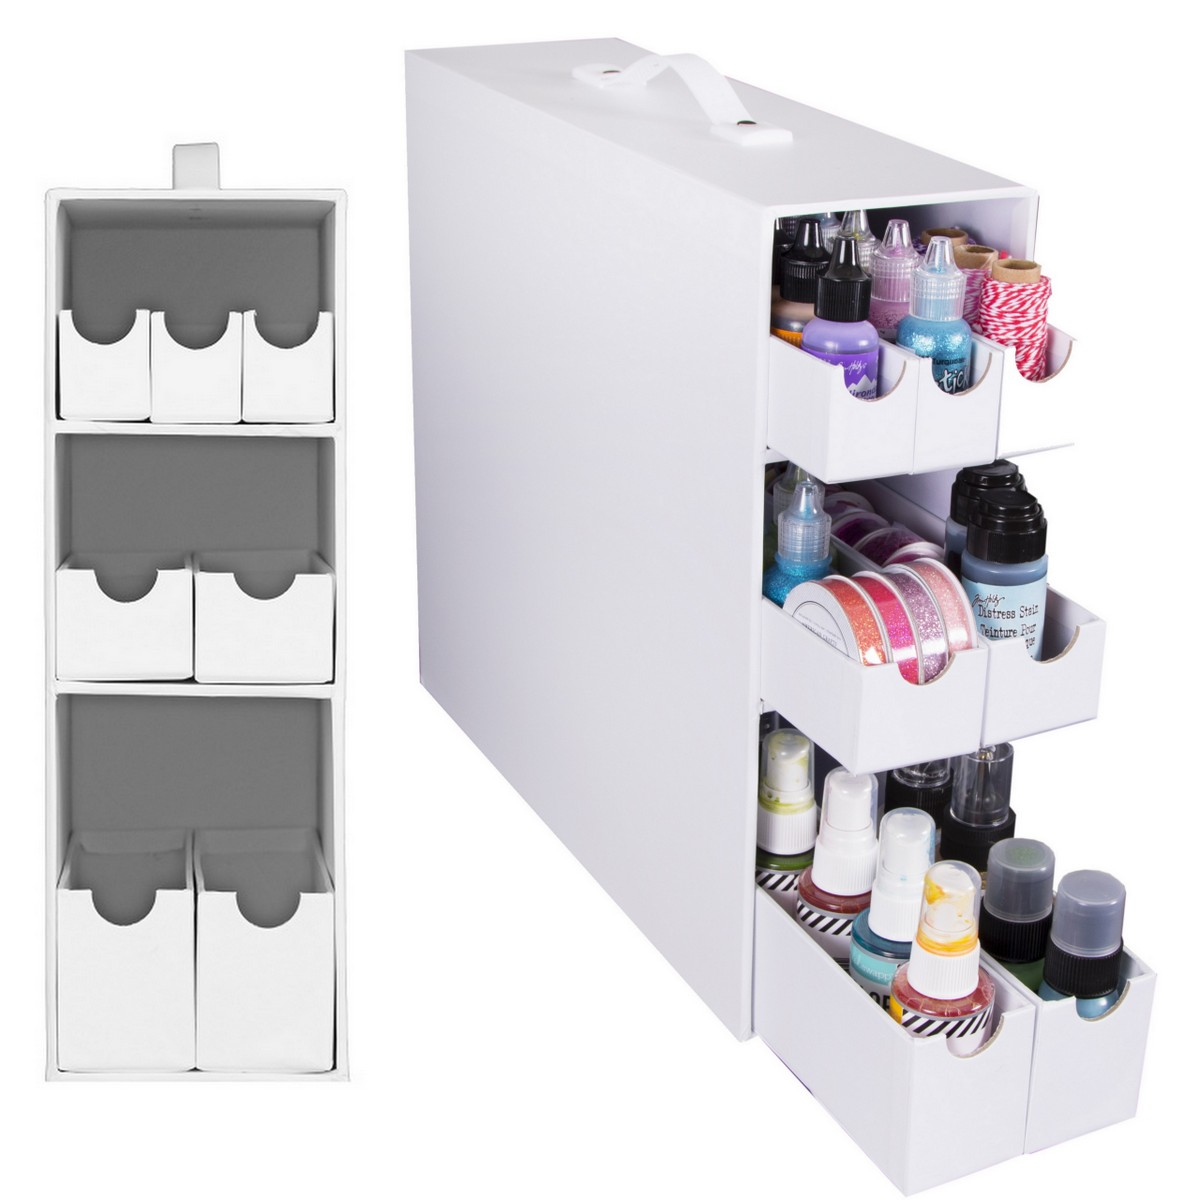 7 drawer organizer - perfect for IKEA Kallax or Expedit